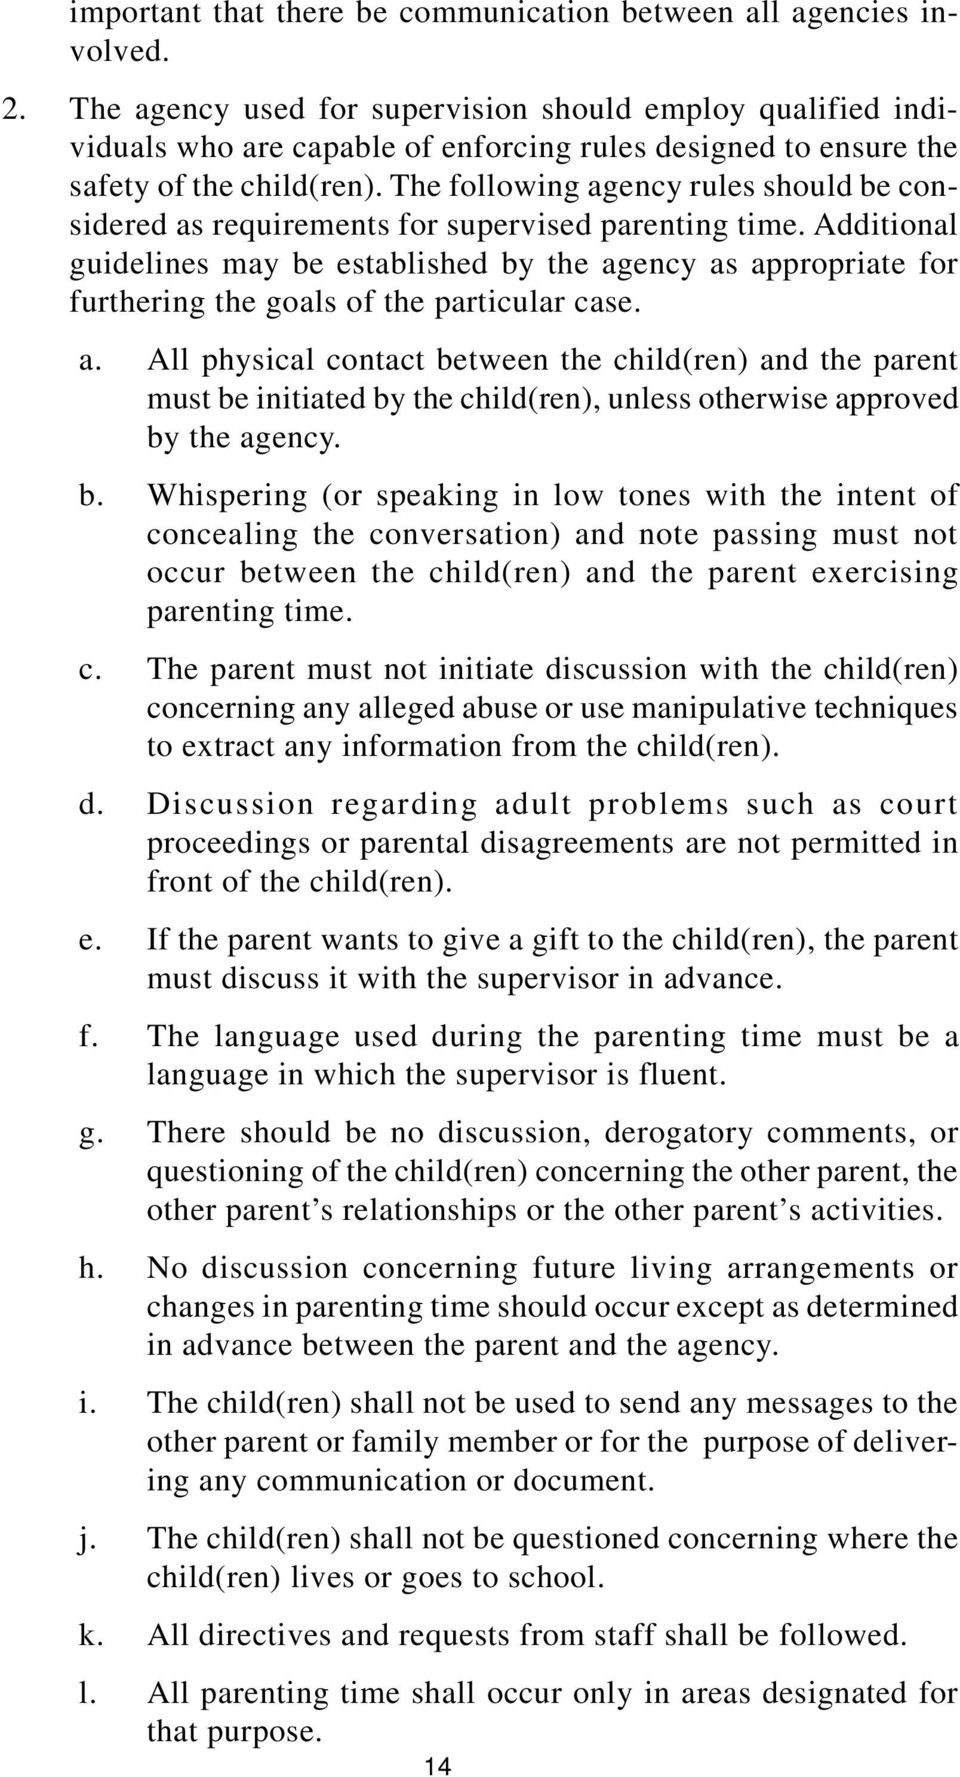 The following agency rules should be considered as requirements for supervised parenting time.